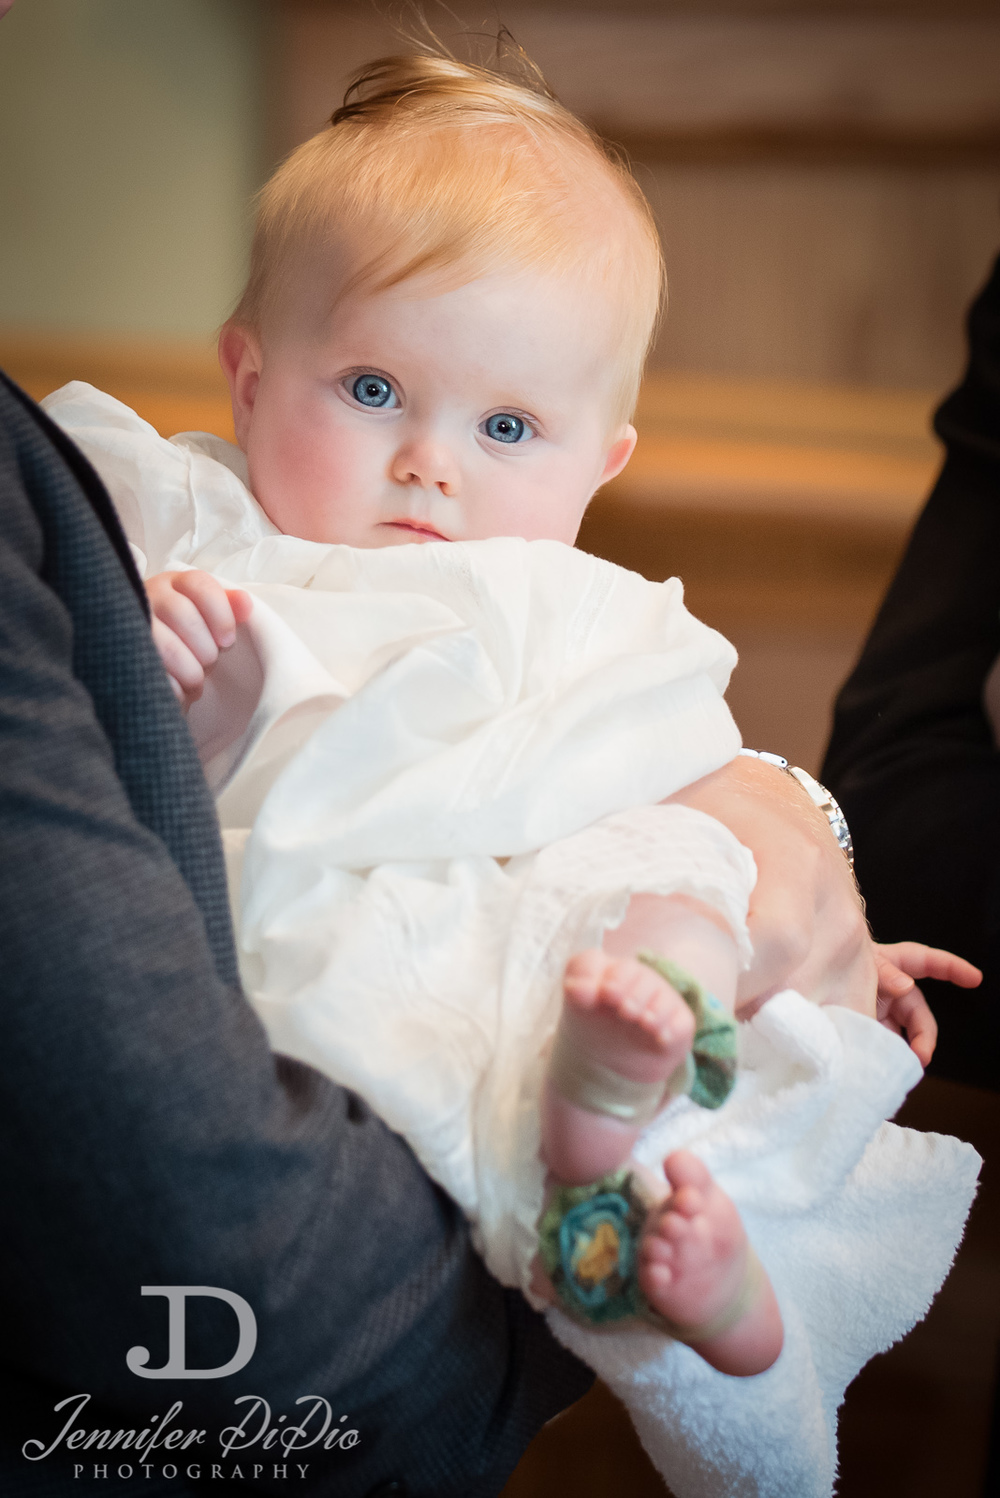 JenniferDiDio-Larson-Collins-christening-138-Edit.jpg